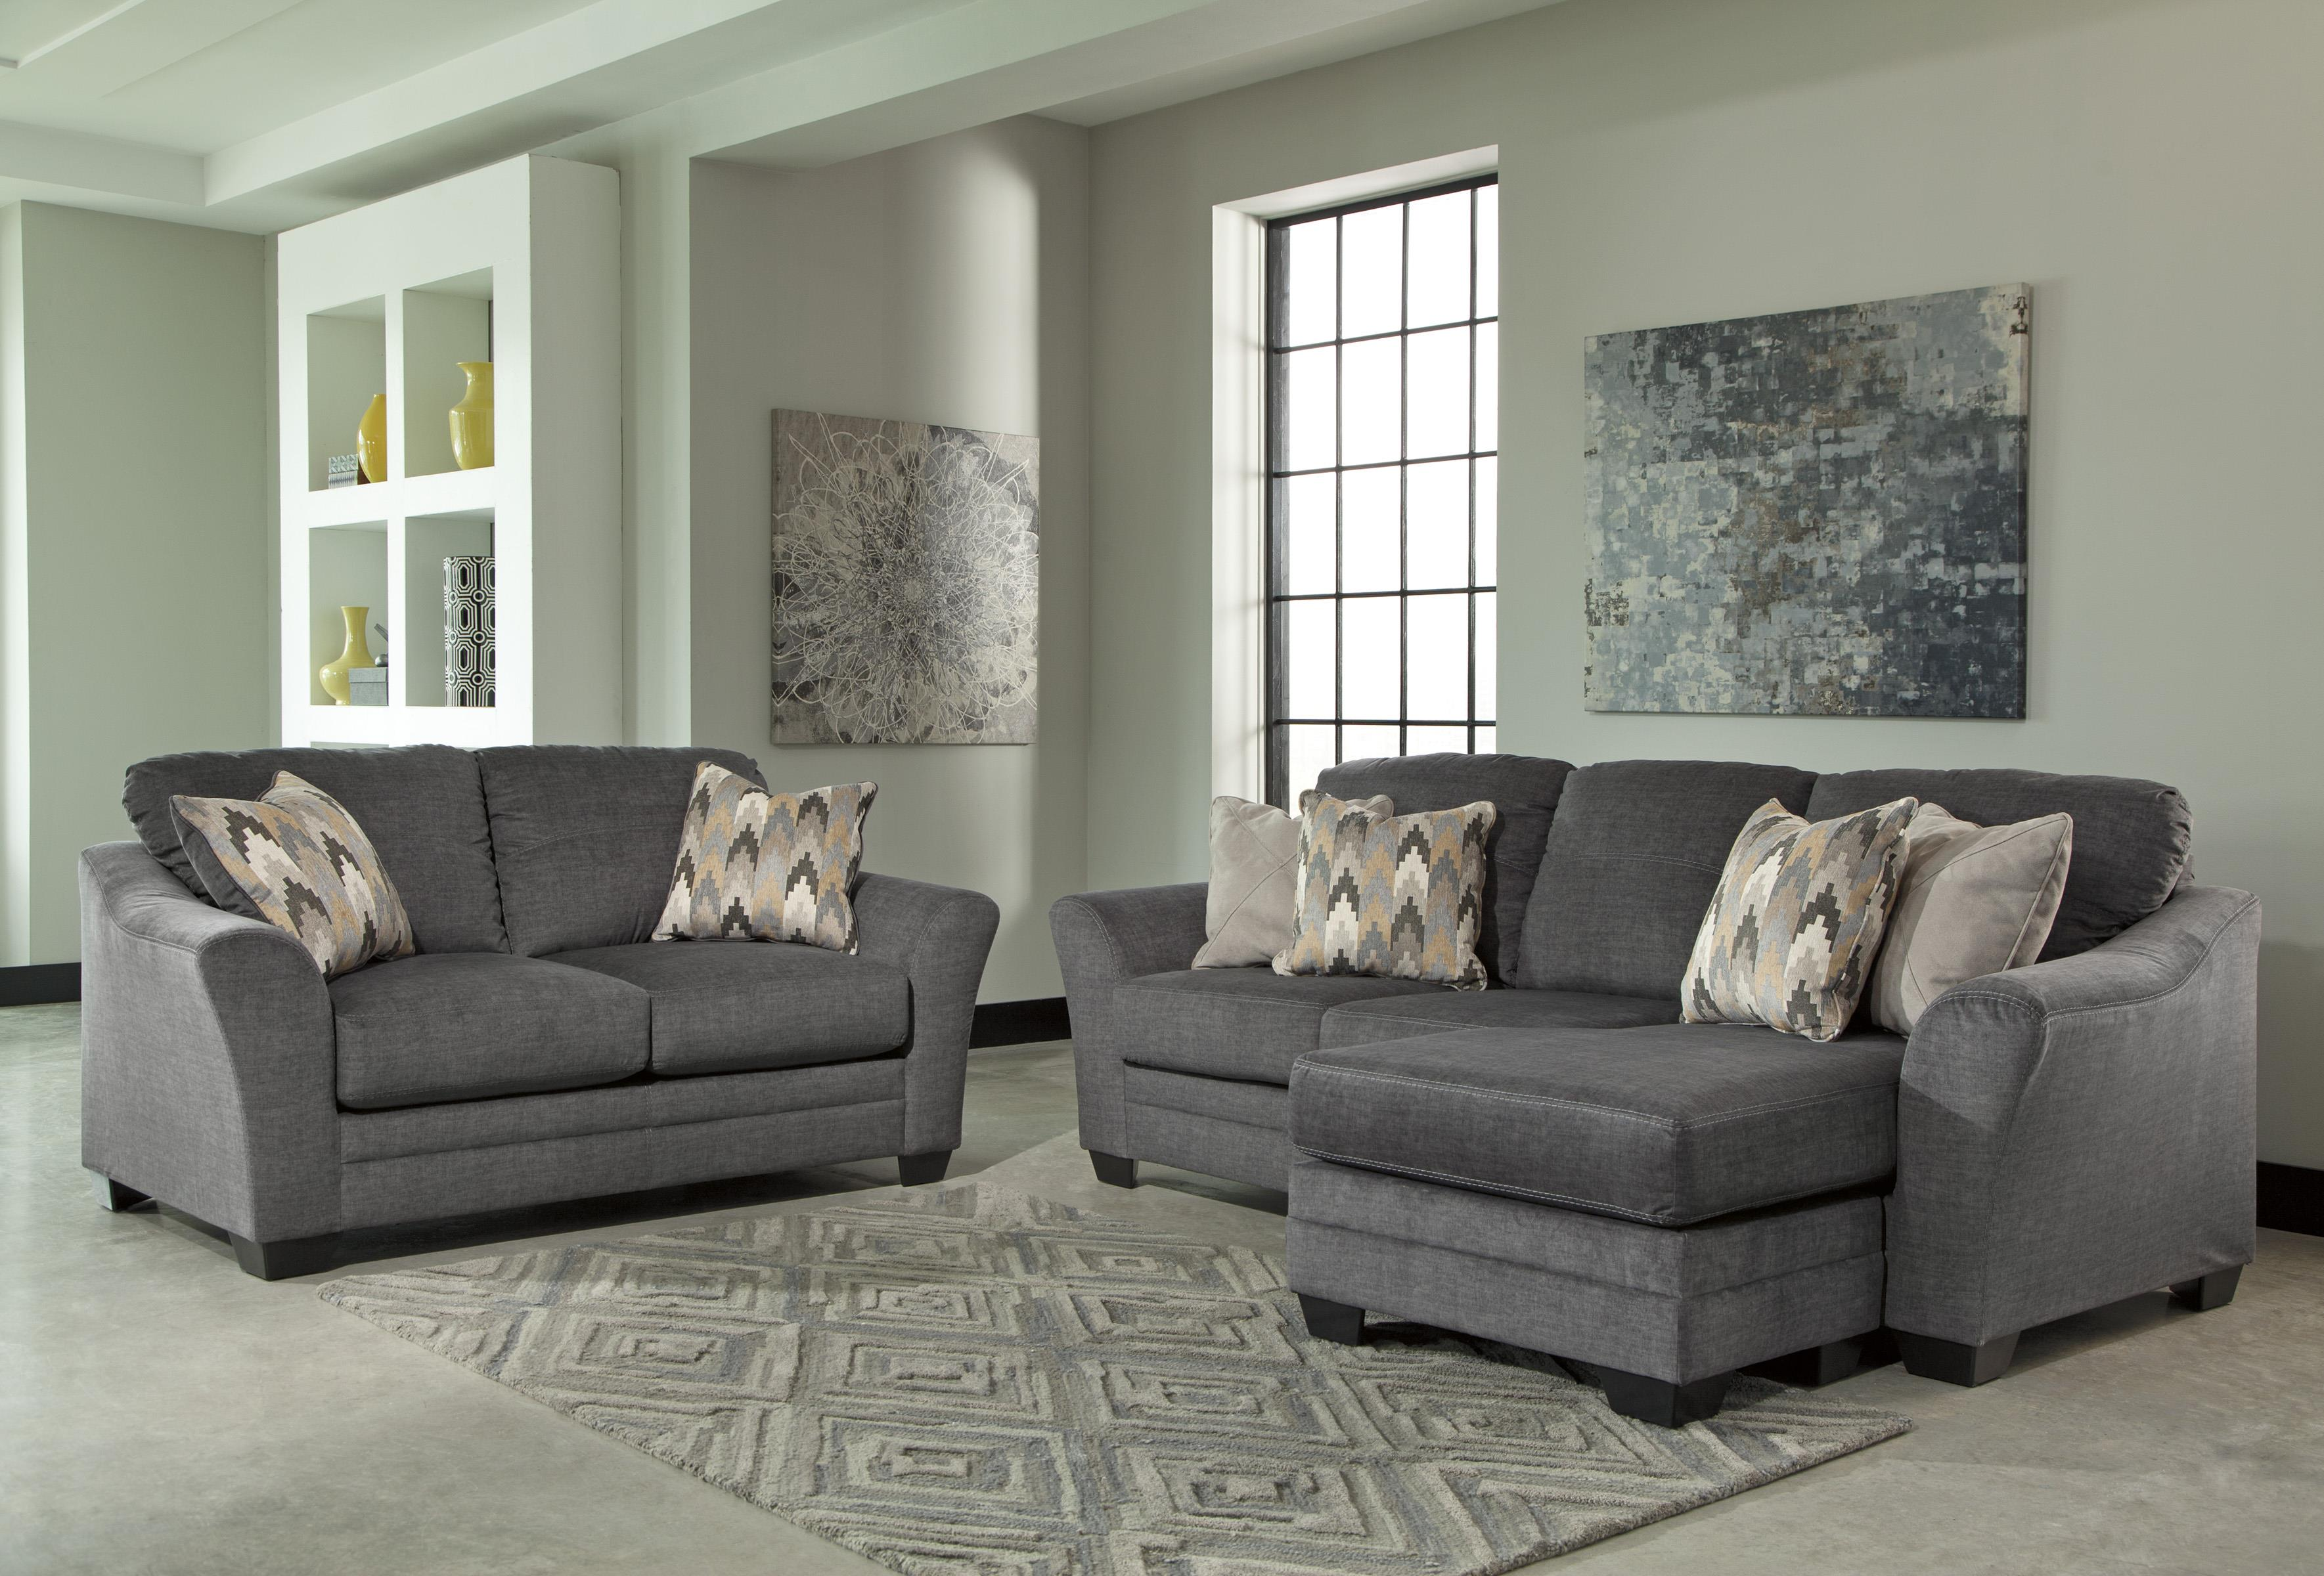 Benchcraft braxlin contemporary sofa chaise in gray fabric zak 39 s fine furniture sofas for Daybed living room furniture